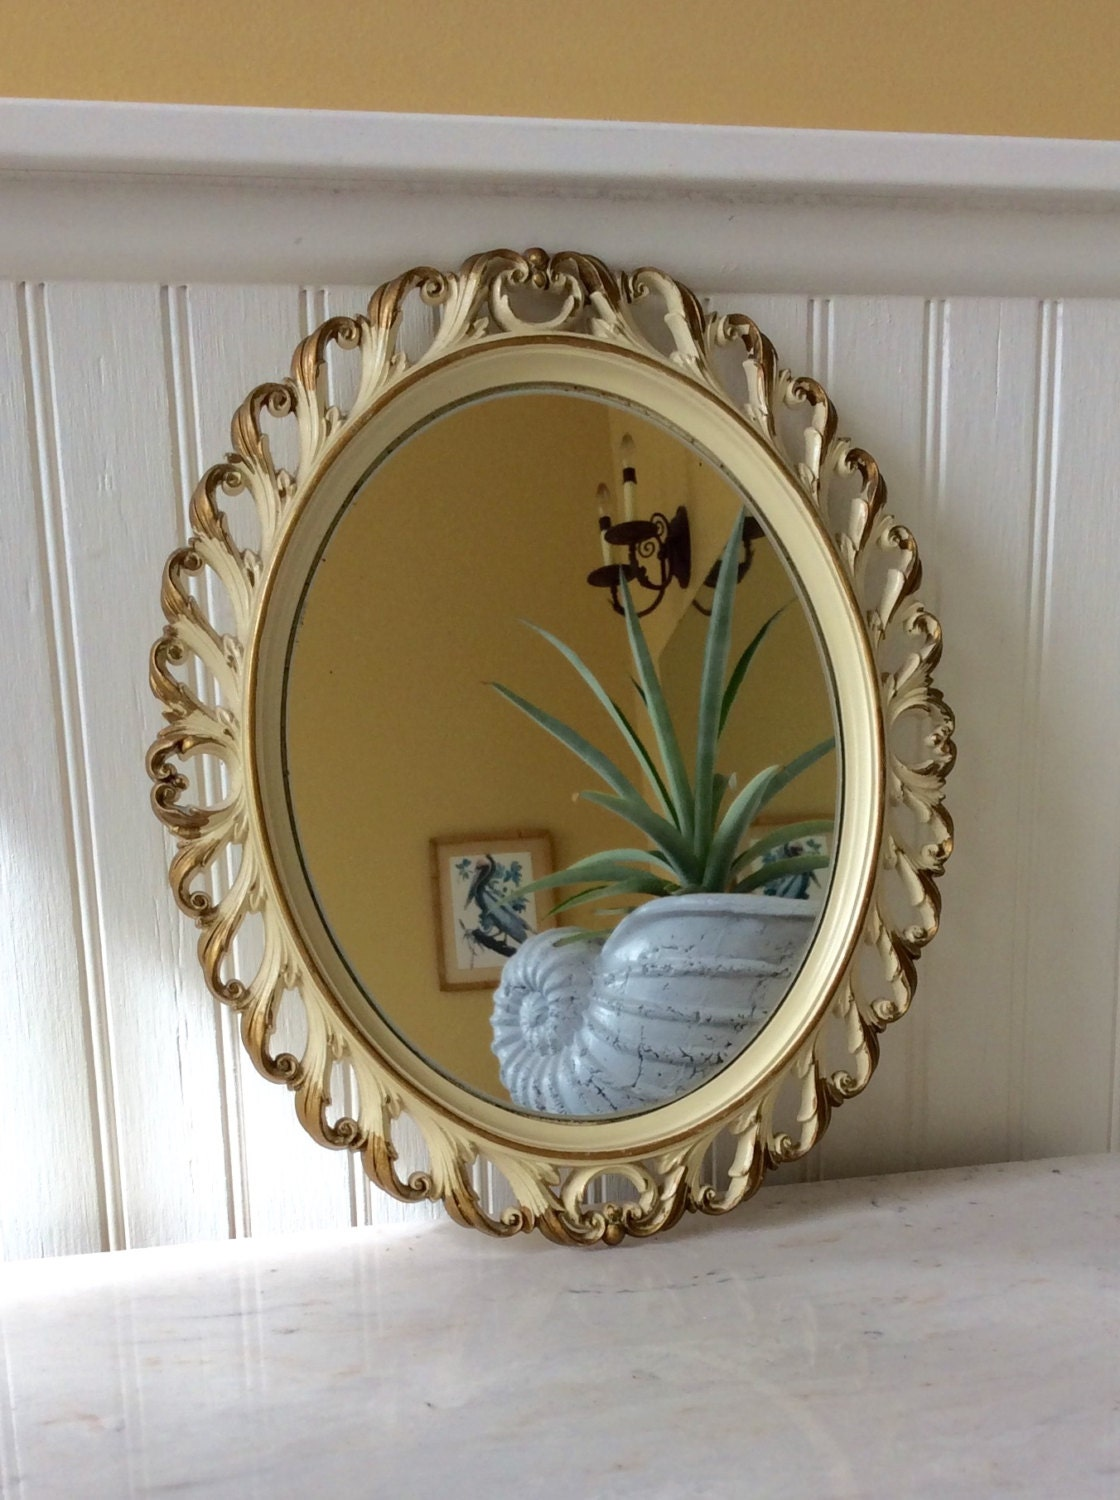 Sale vintage oval ornate white gold syroco mirror for White and gold mirror